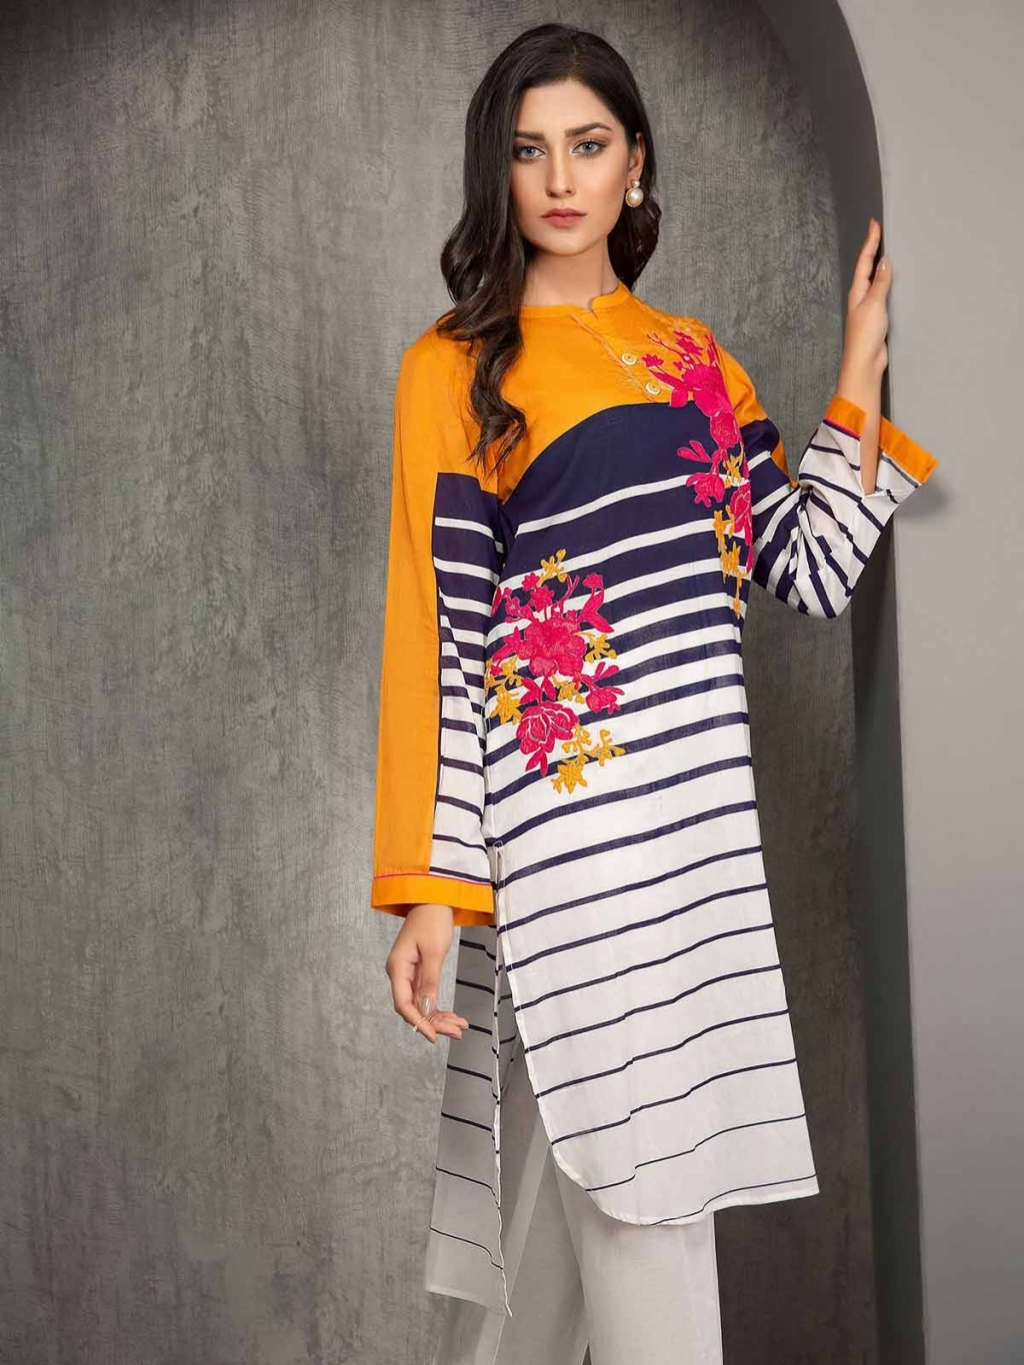 16226205540_Limelight-embroidered-lawn-01.jpg